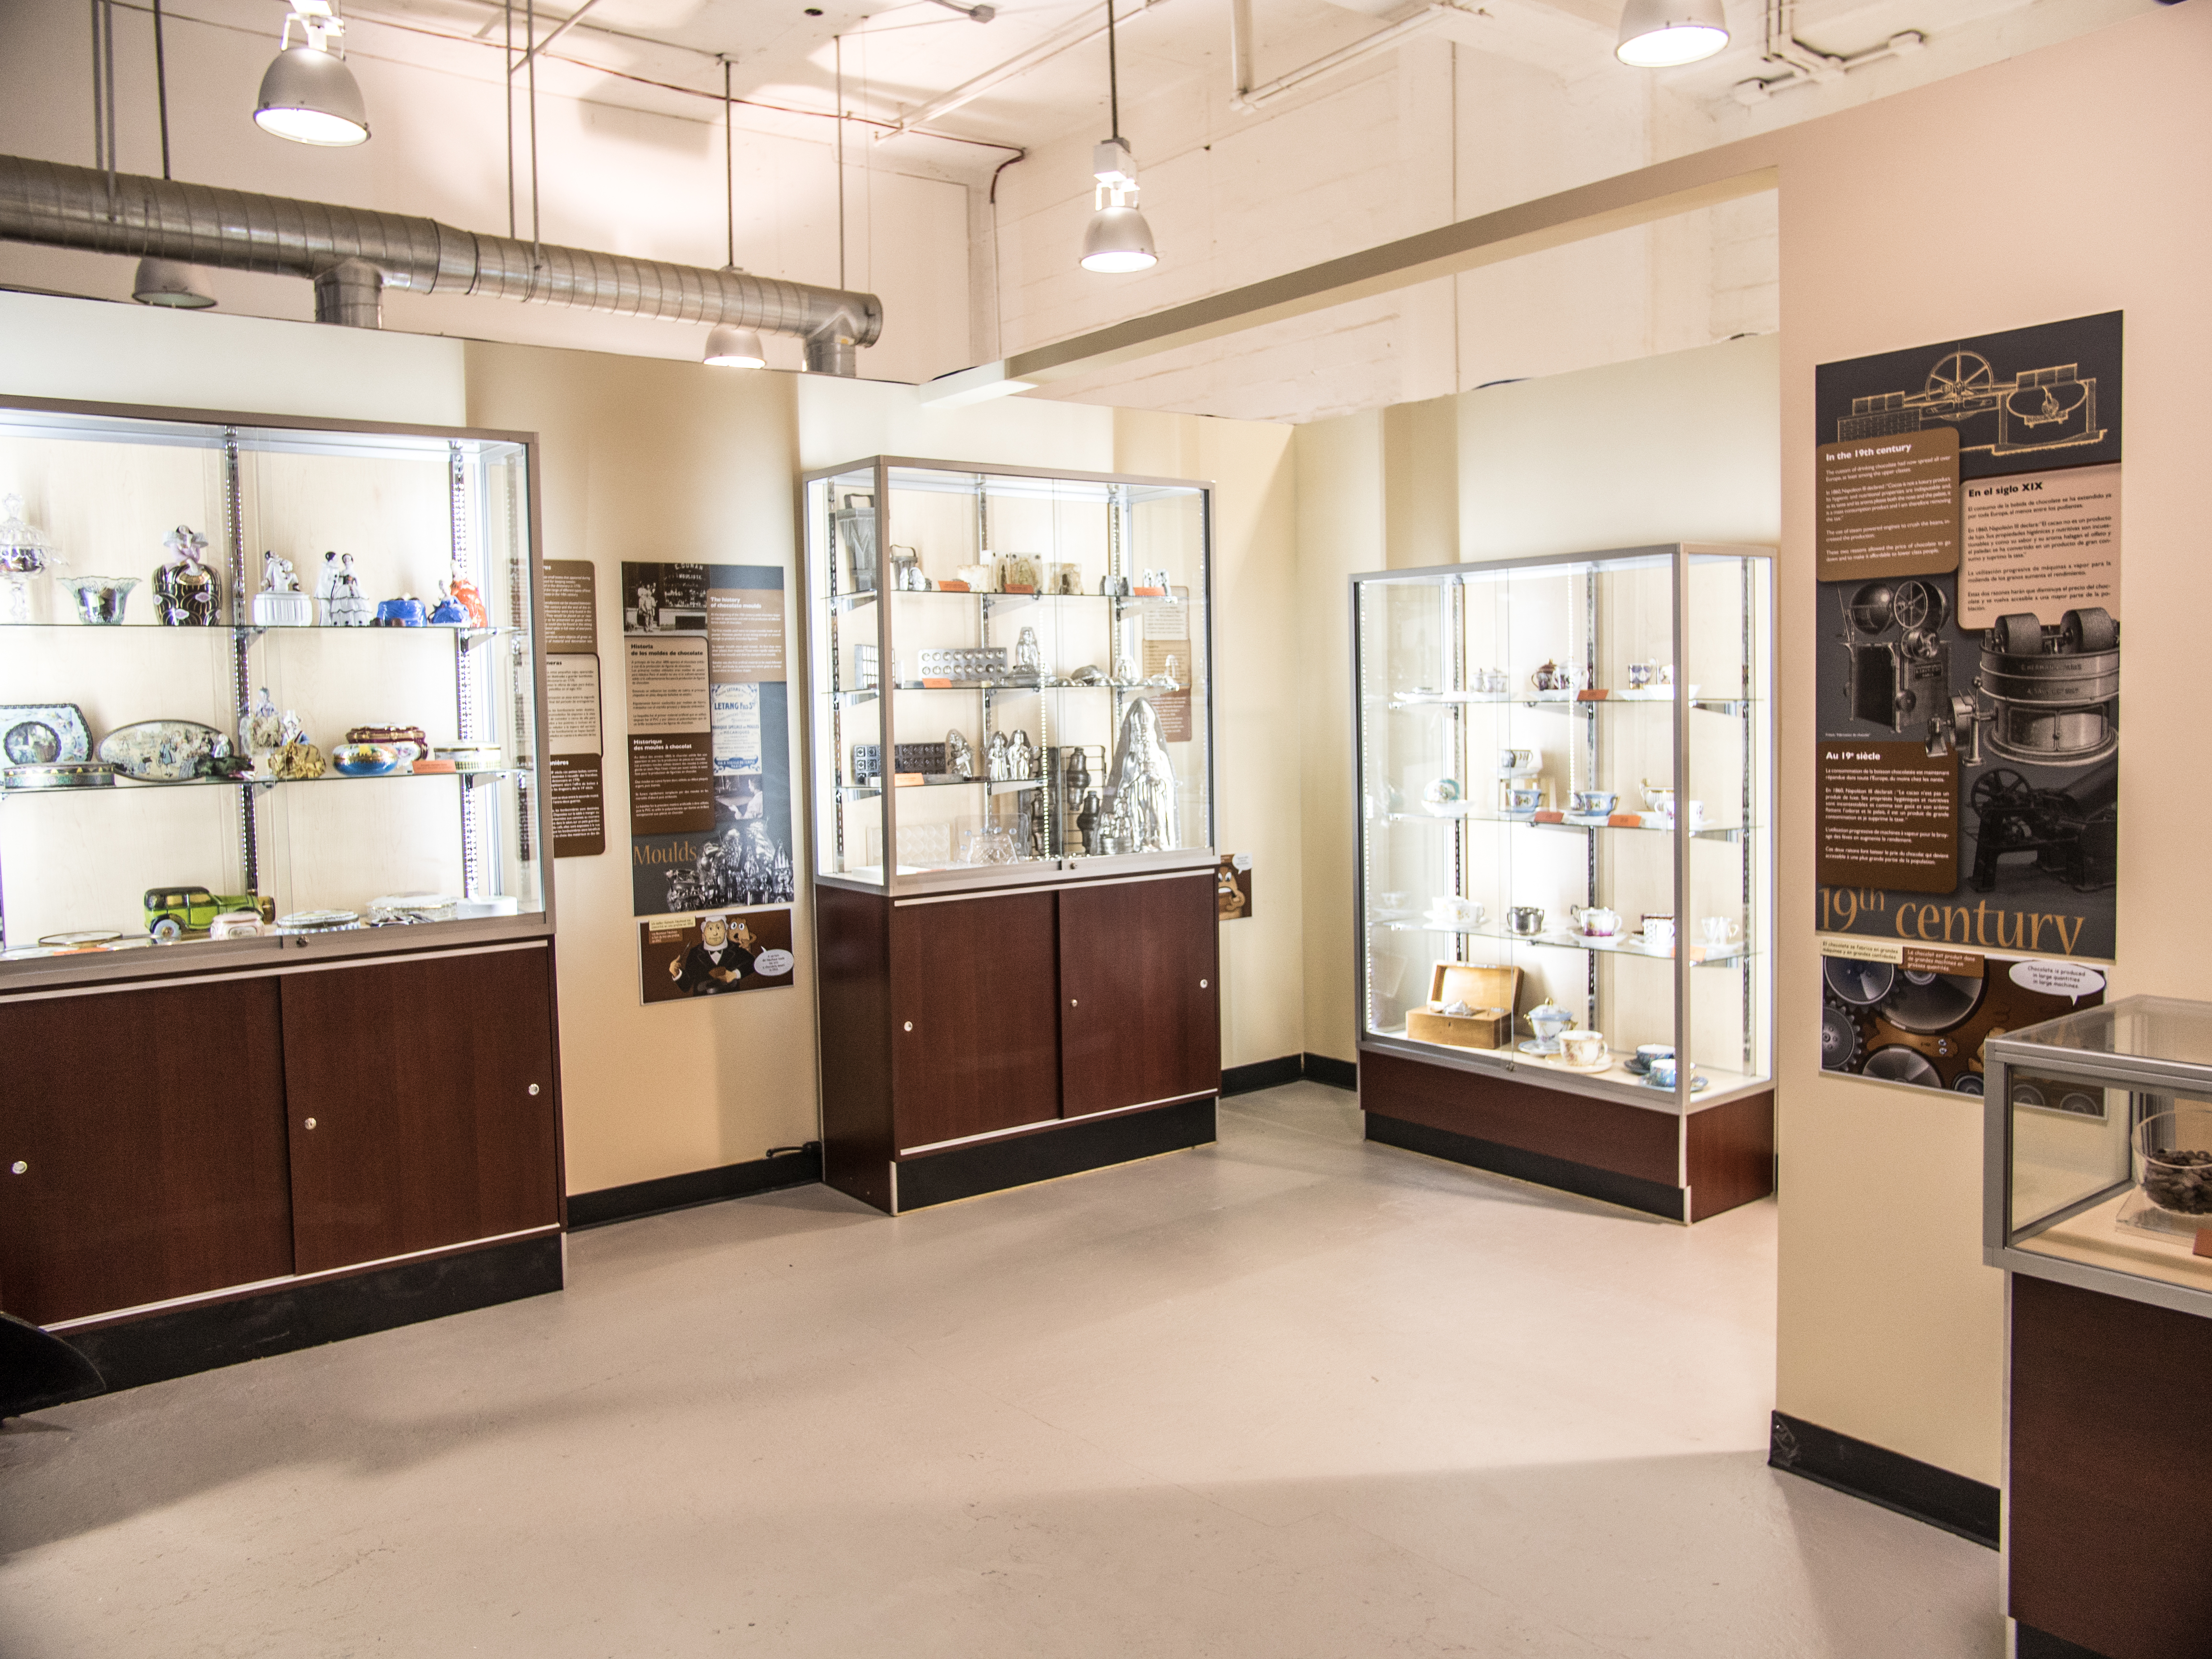 Curated display cases include historical artifacts that trace the history of cocoa and chocolate.